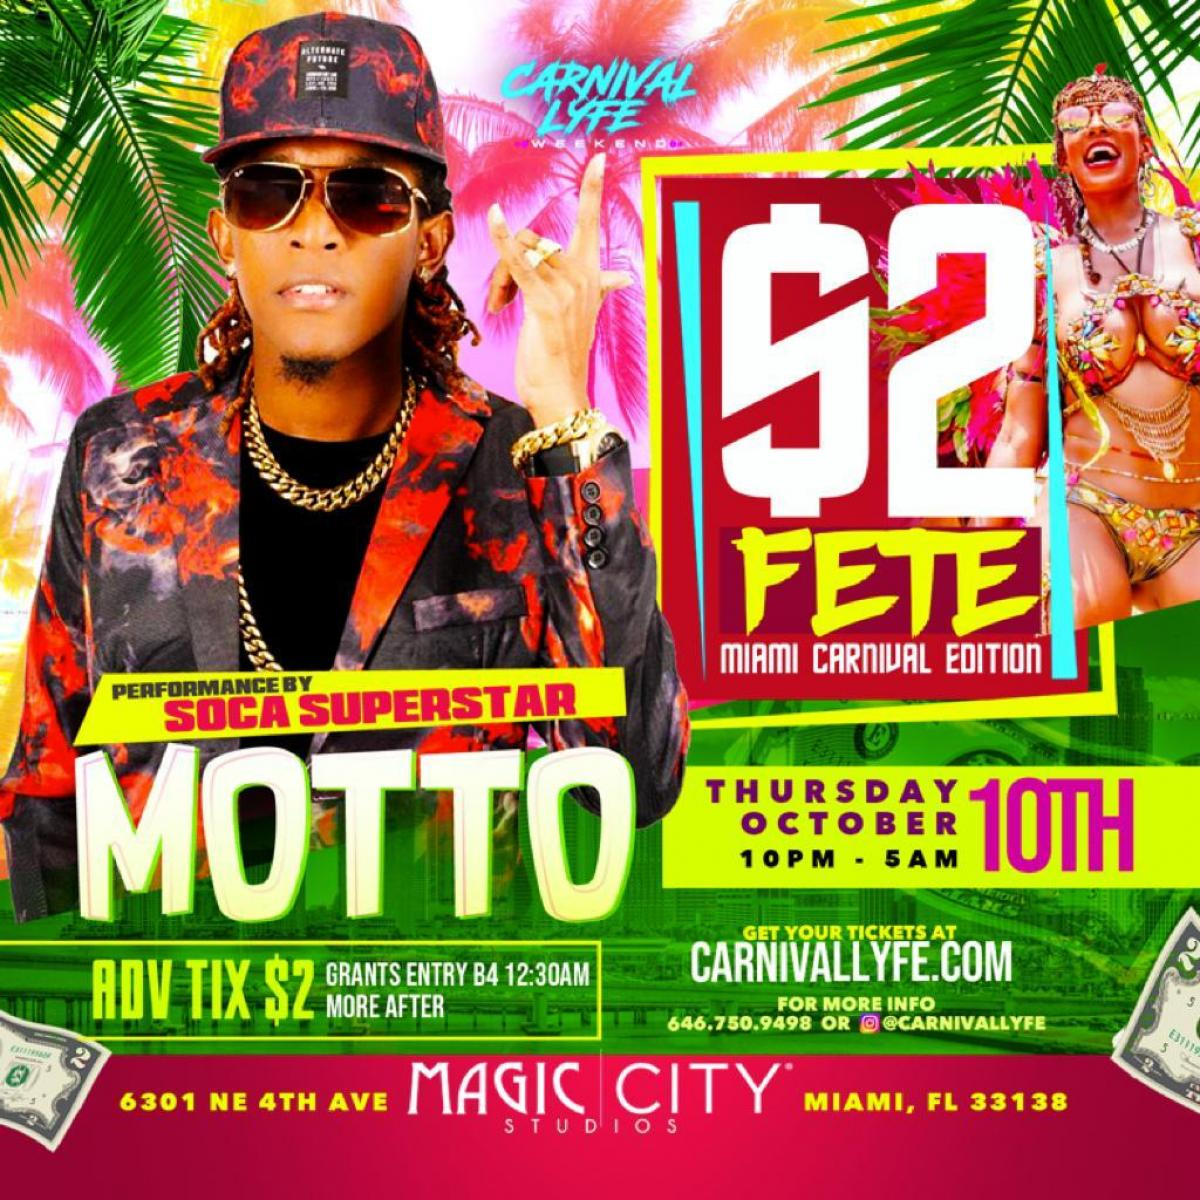 2$ Fete flyer or graphic.